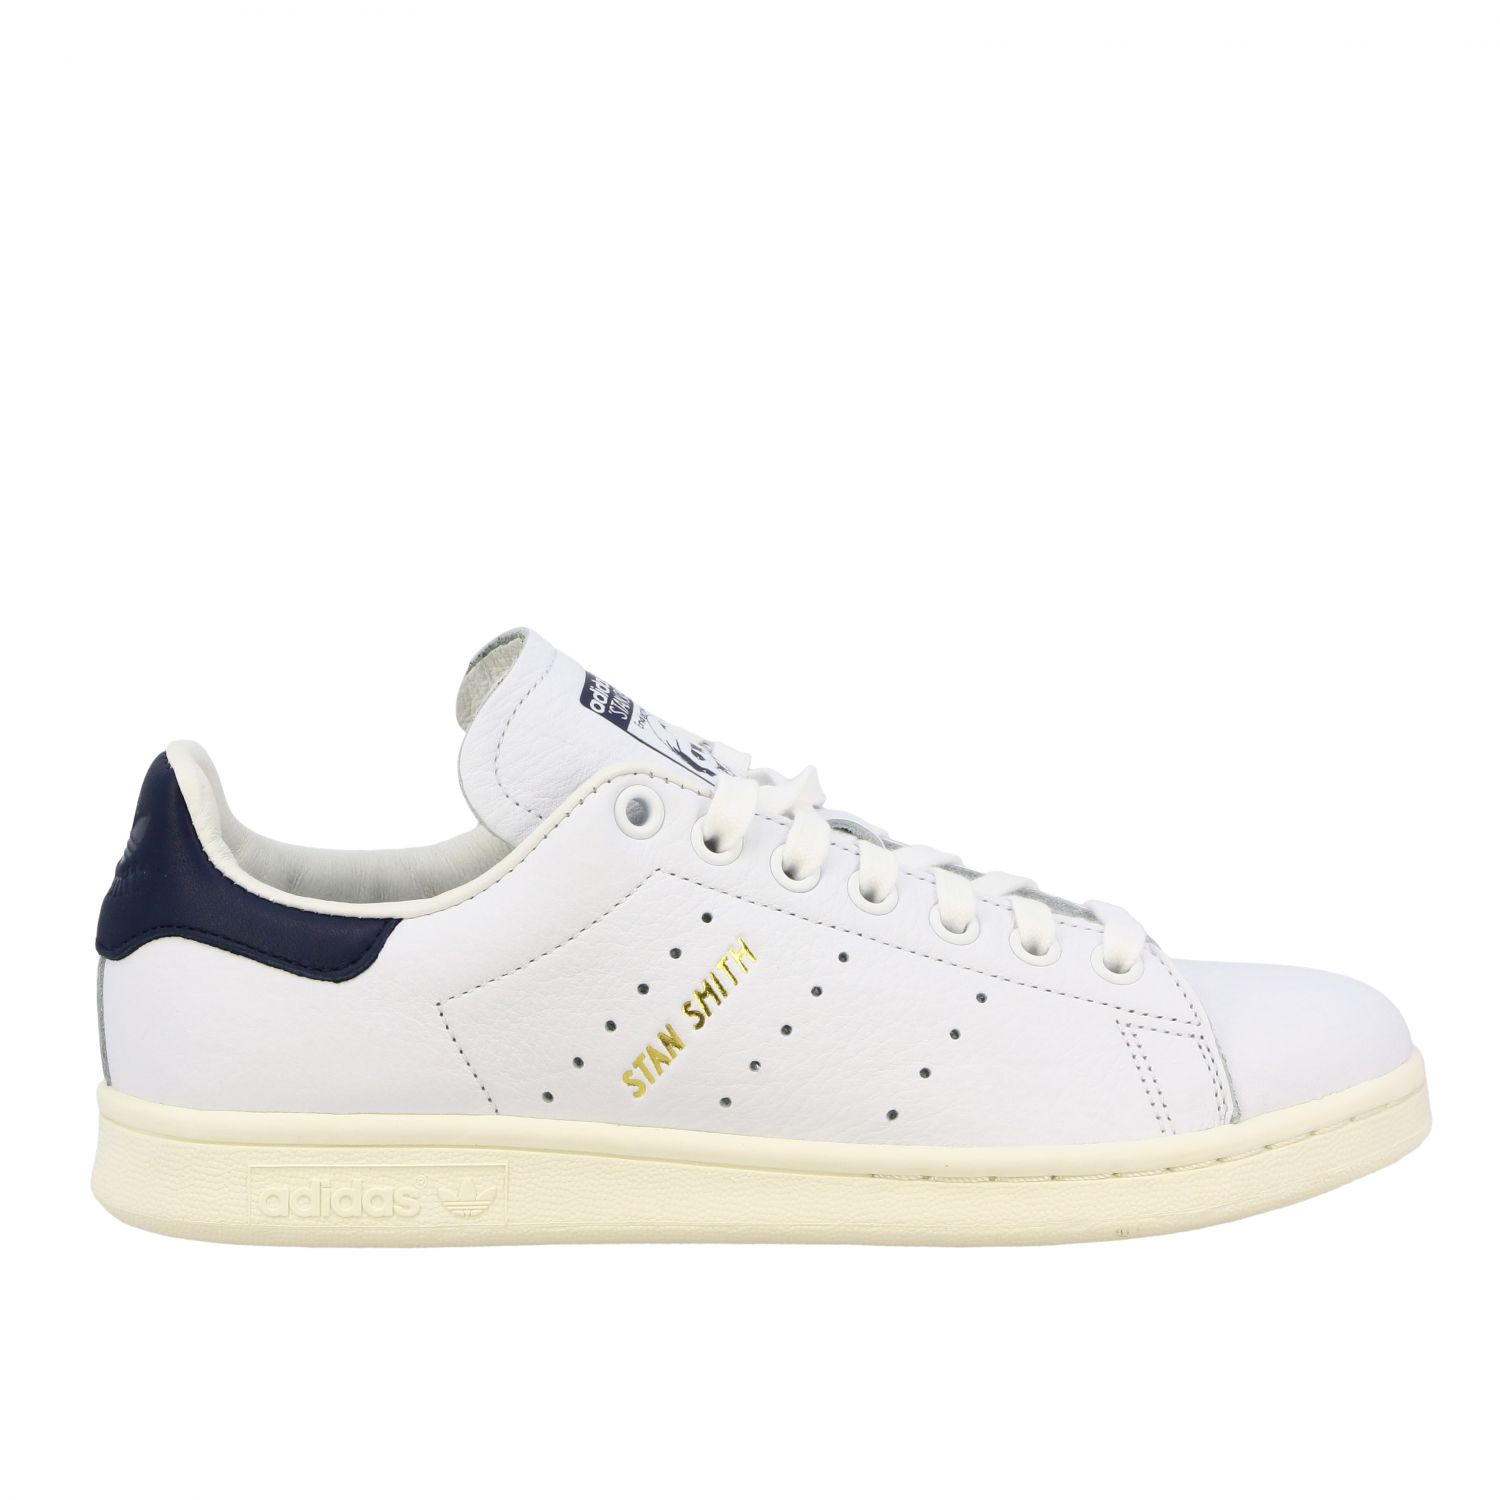 Talla Mierda Degenerar  Stan smith Adidas Originals leather sneakers | Sneakers Adidas Originals  Women White | Sneakers Adidas Originals CQ2870 Giglio EN